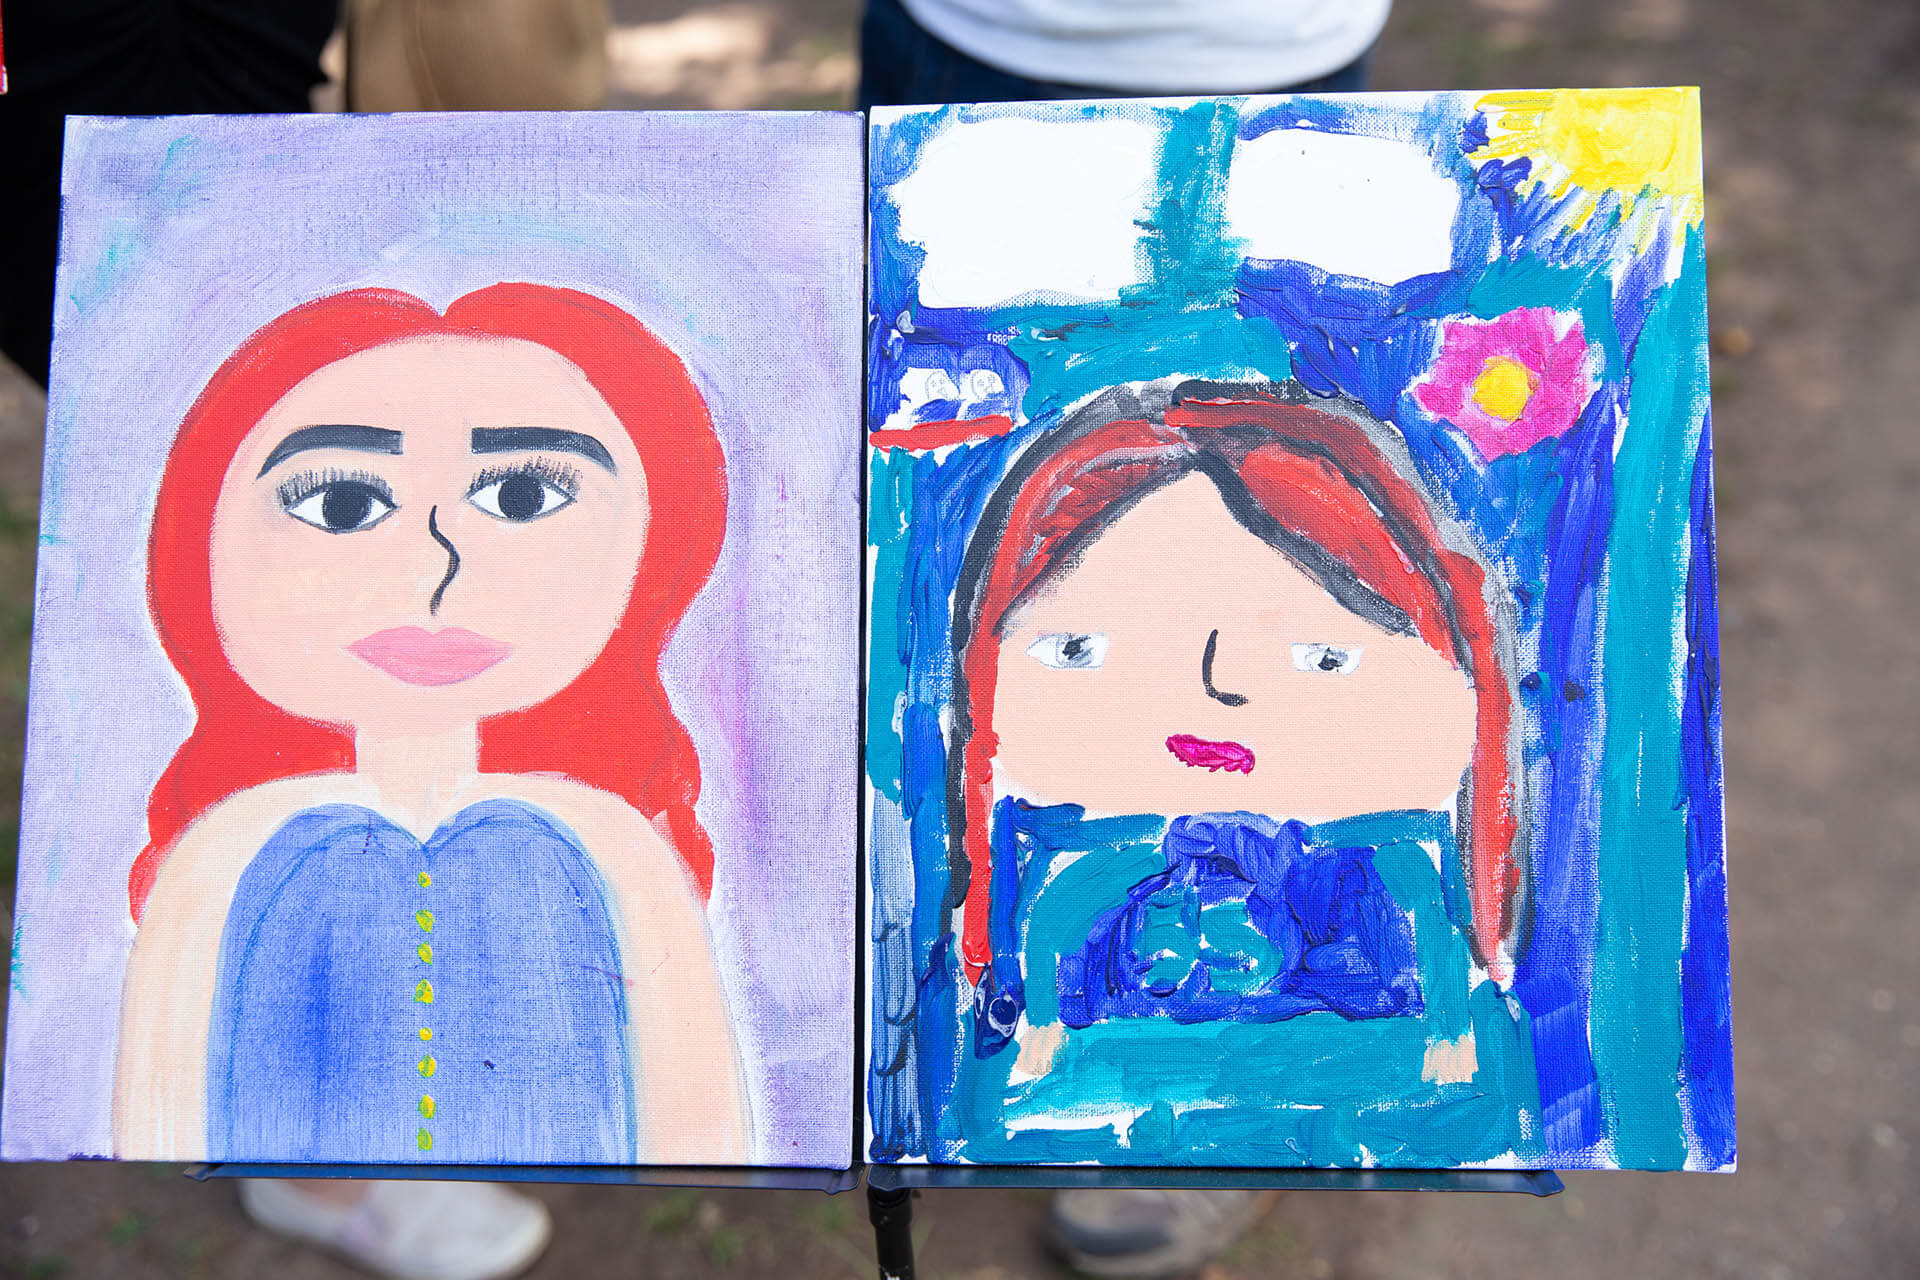 Children showing paintings they made at an art show.